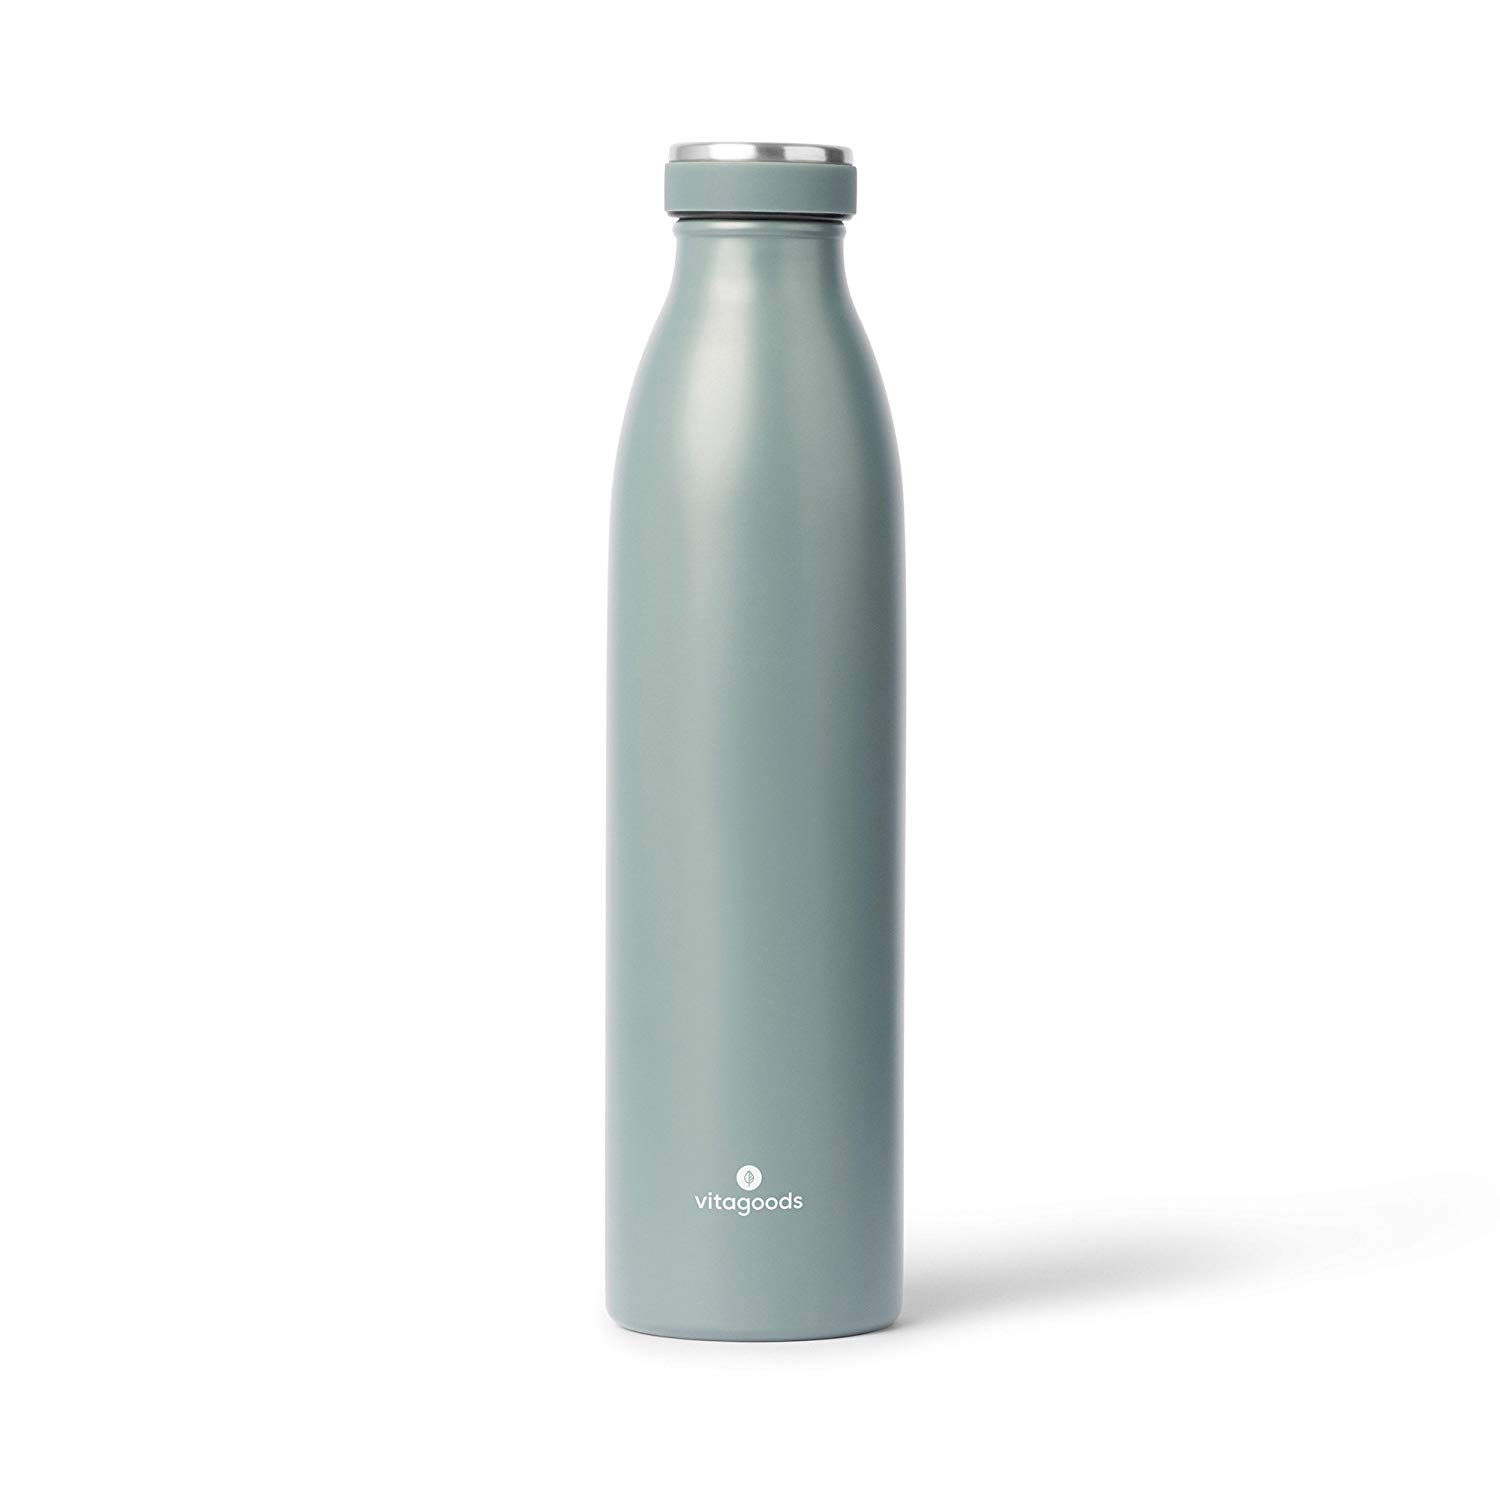 Vitagoods Spout Vacuum Sealed Stainless Steel Water Bottle, 750mL, Forest Green